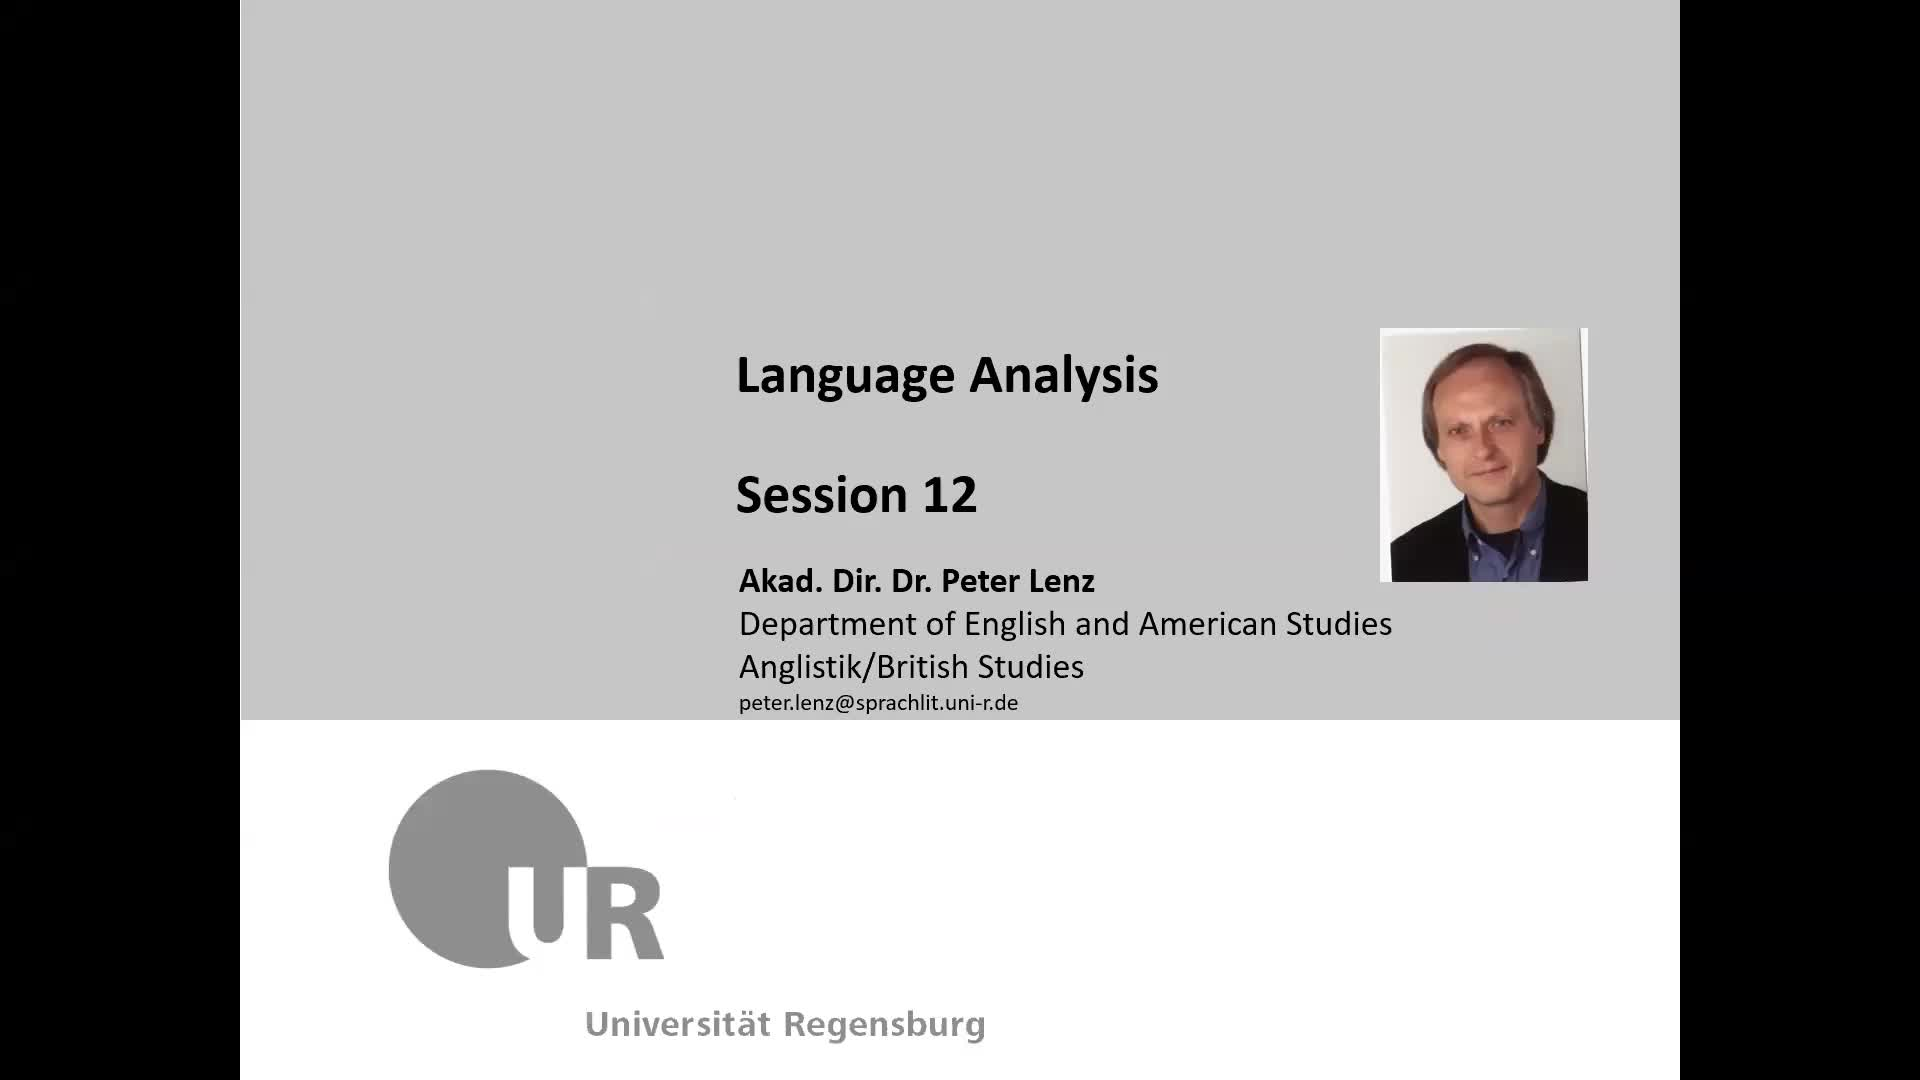 Language Analysis Session 12 Video